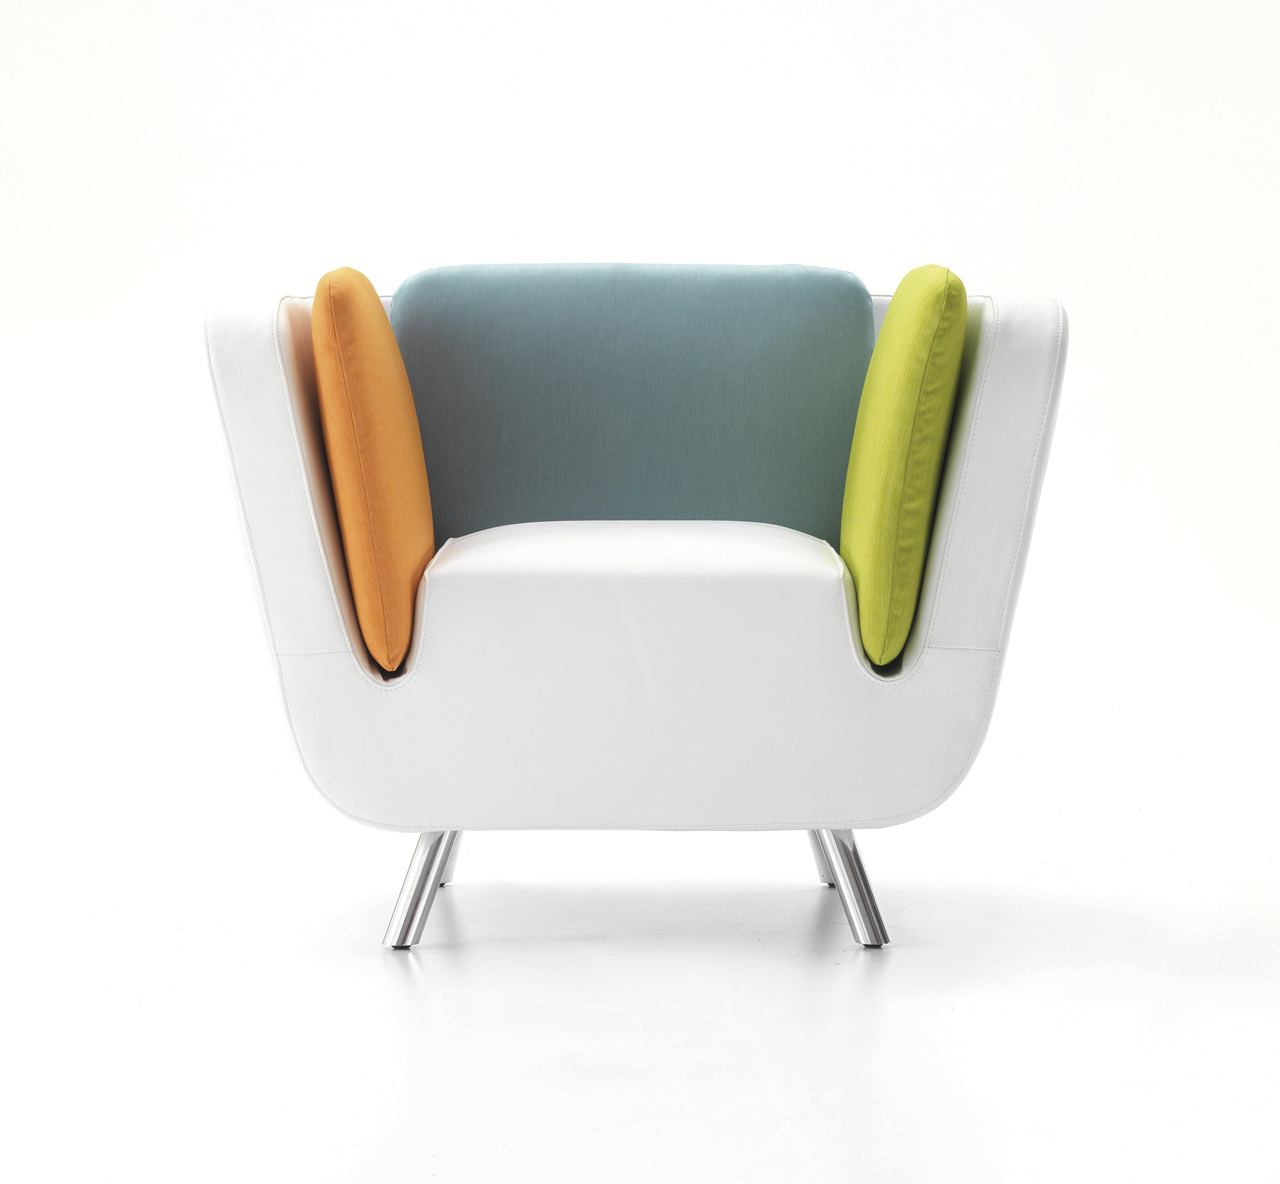 NOOK Lounge Chair & Matching Luggage by Karim Rashid - Design Milk